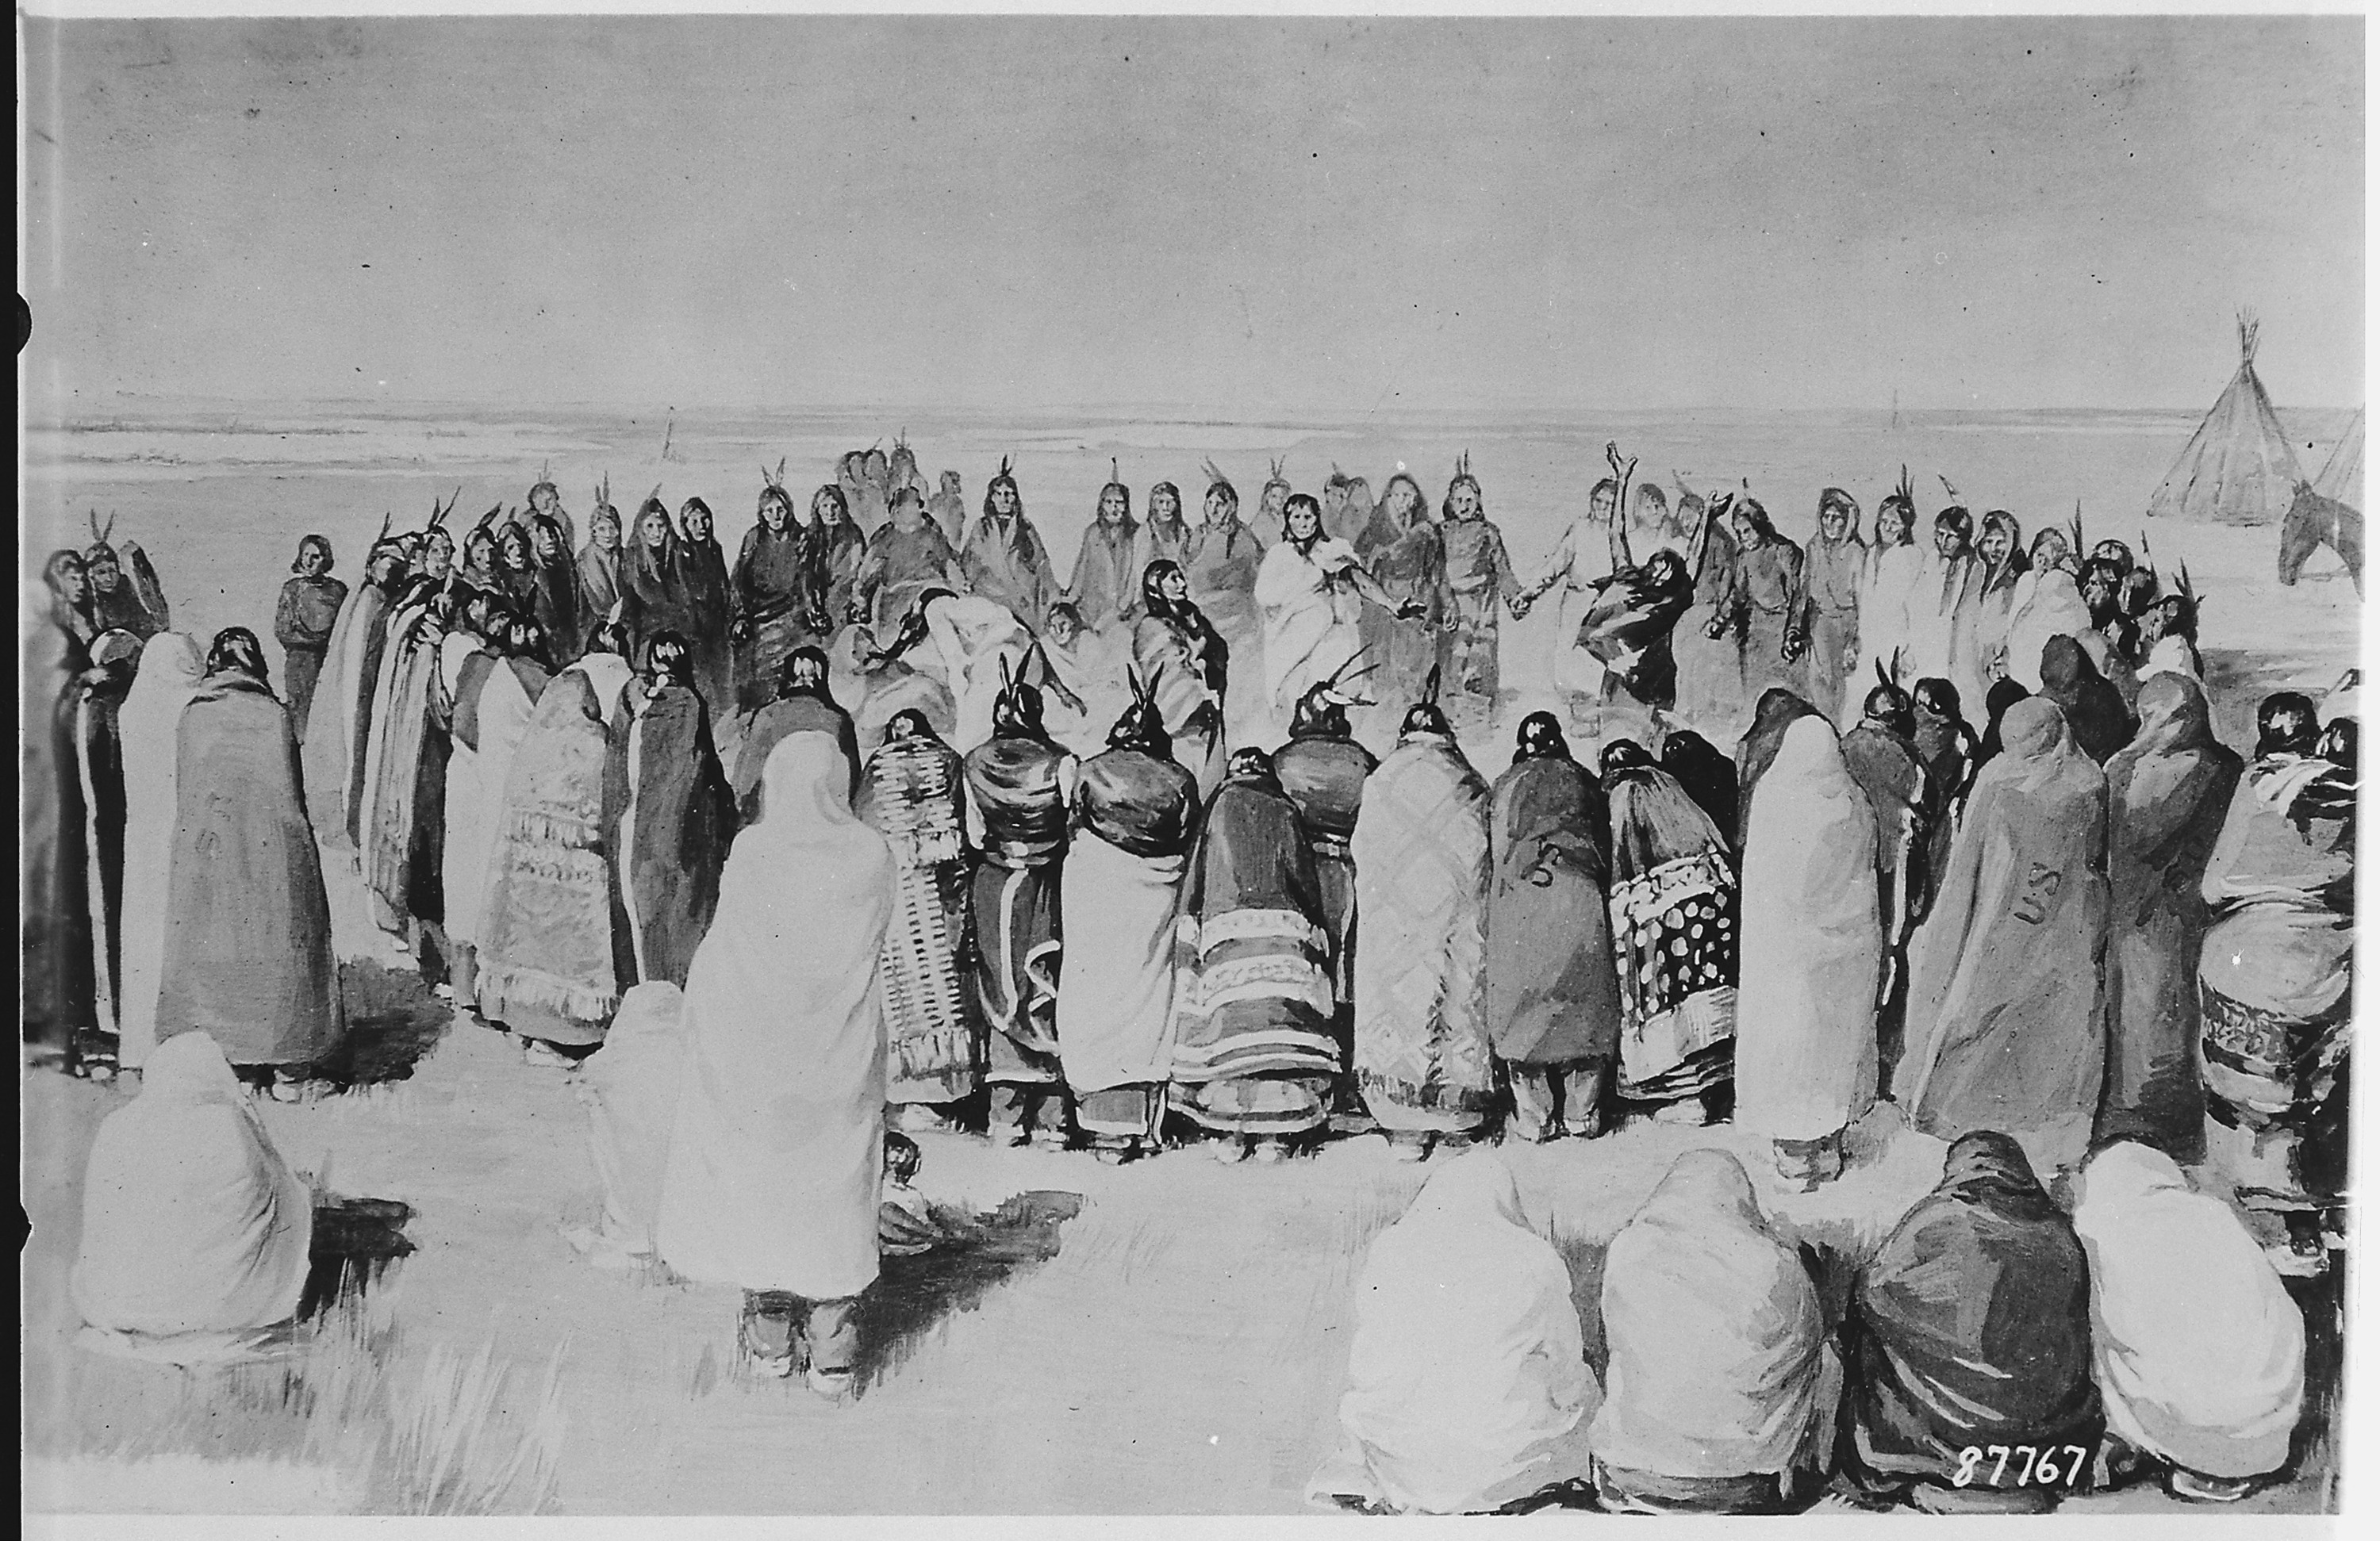 Wounded Knee Massacre & The Ghost Dance (article) | Khan Academy